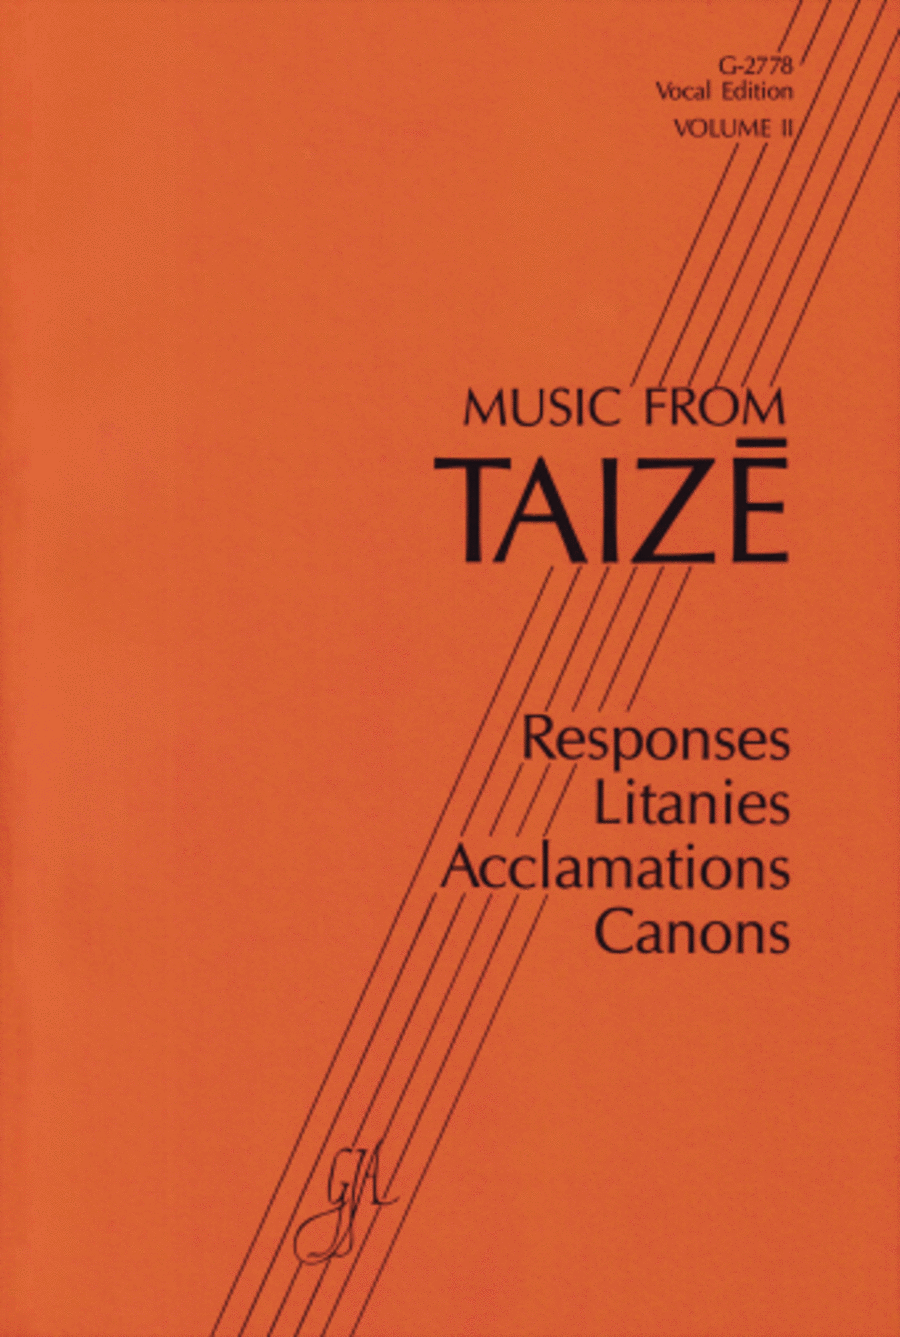 Music from Taize (Volume 2 Instrumental Parts)